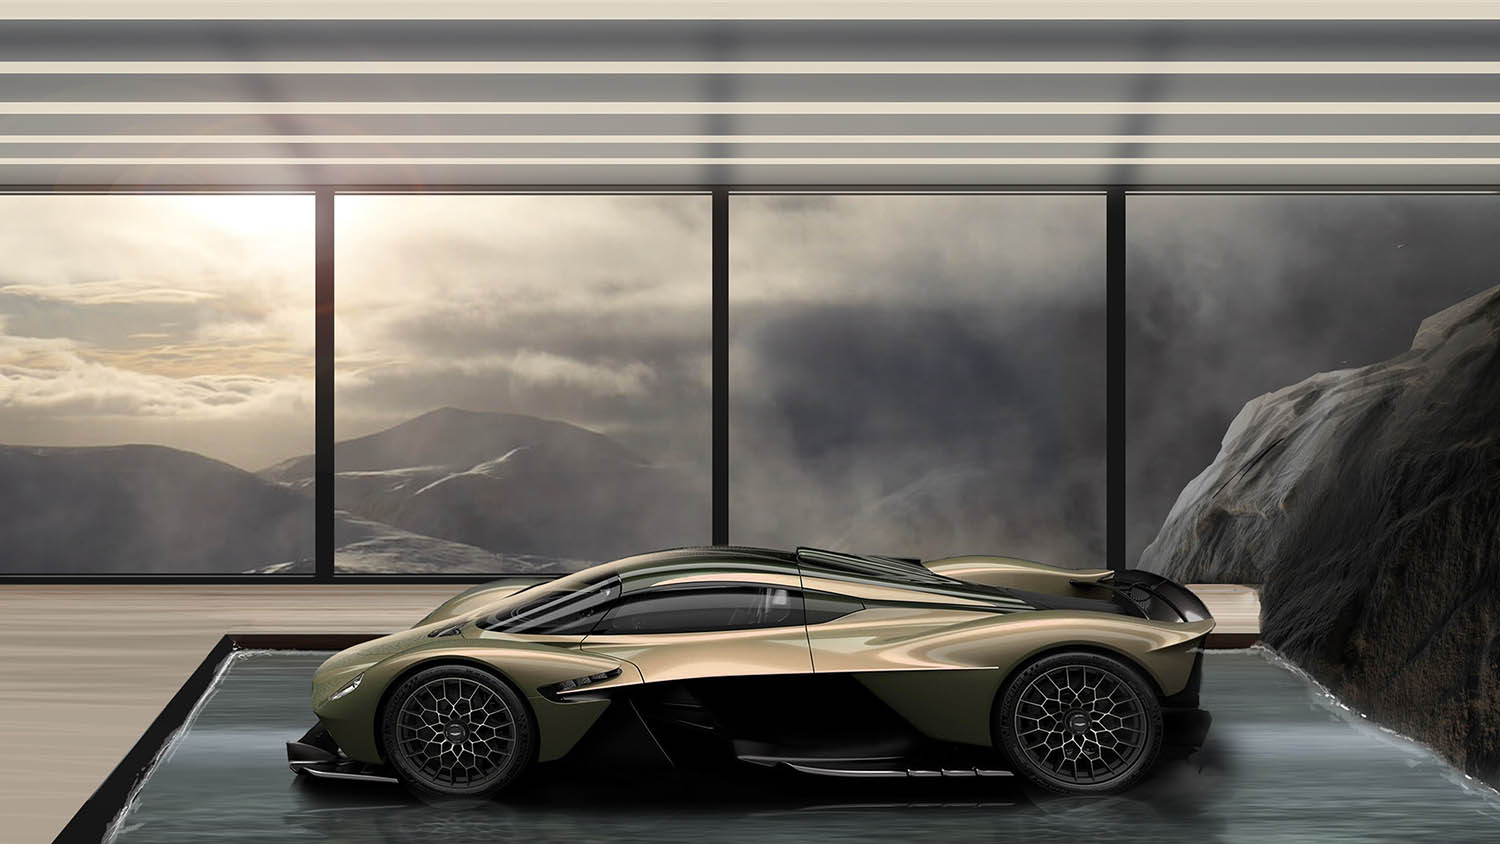 Aston Martin Automotive Galleries and Lairs revealed at Pebble Beach_05.jpg